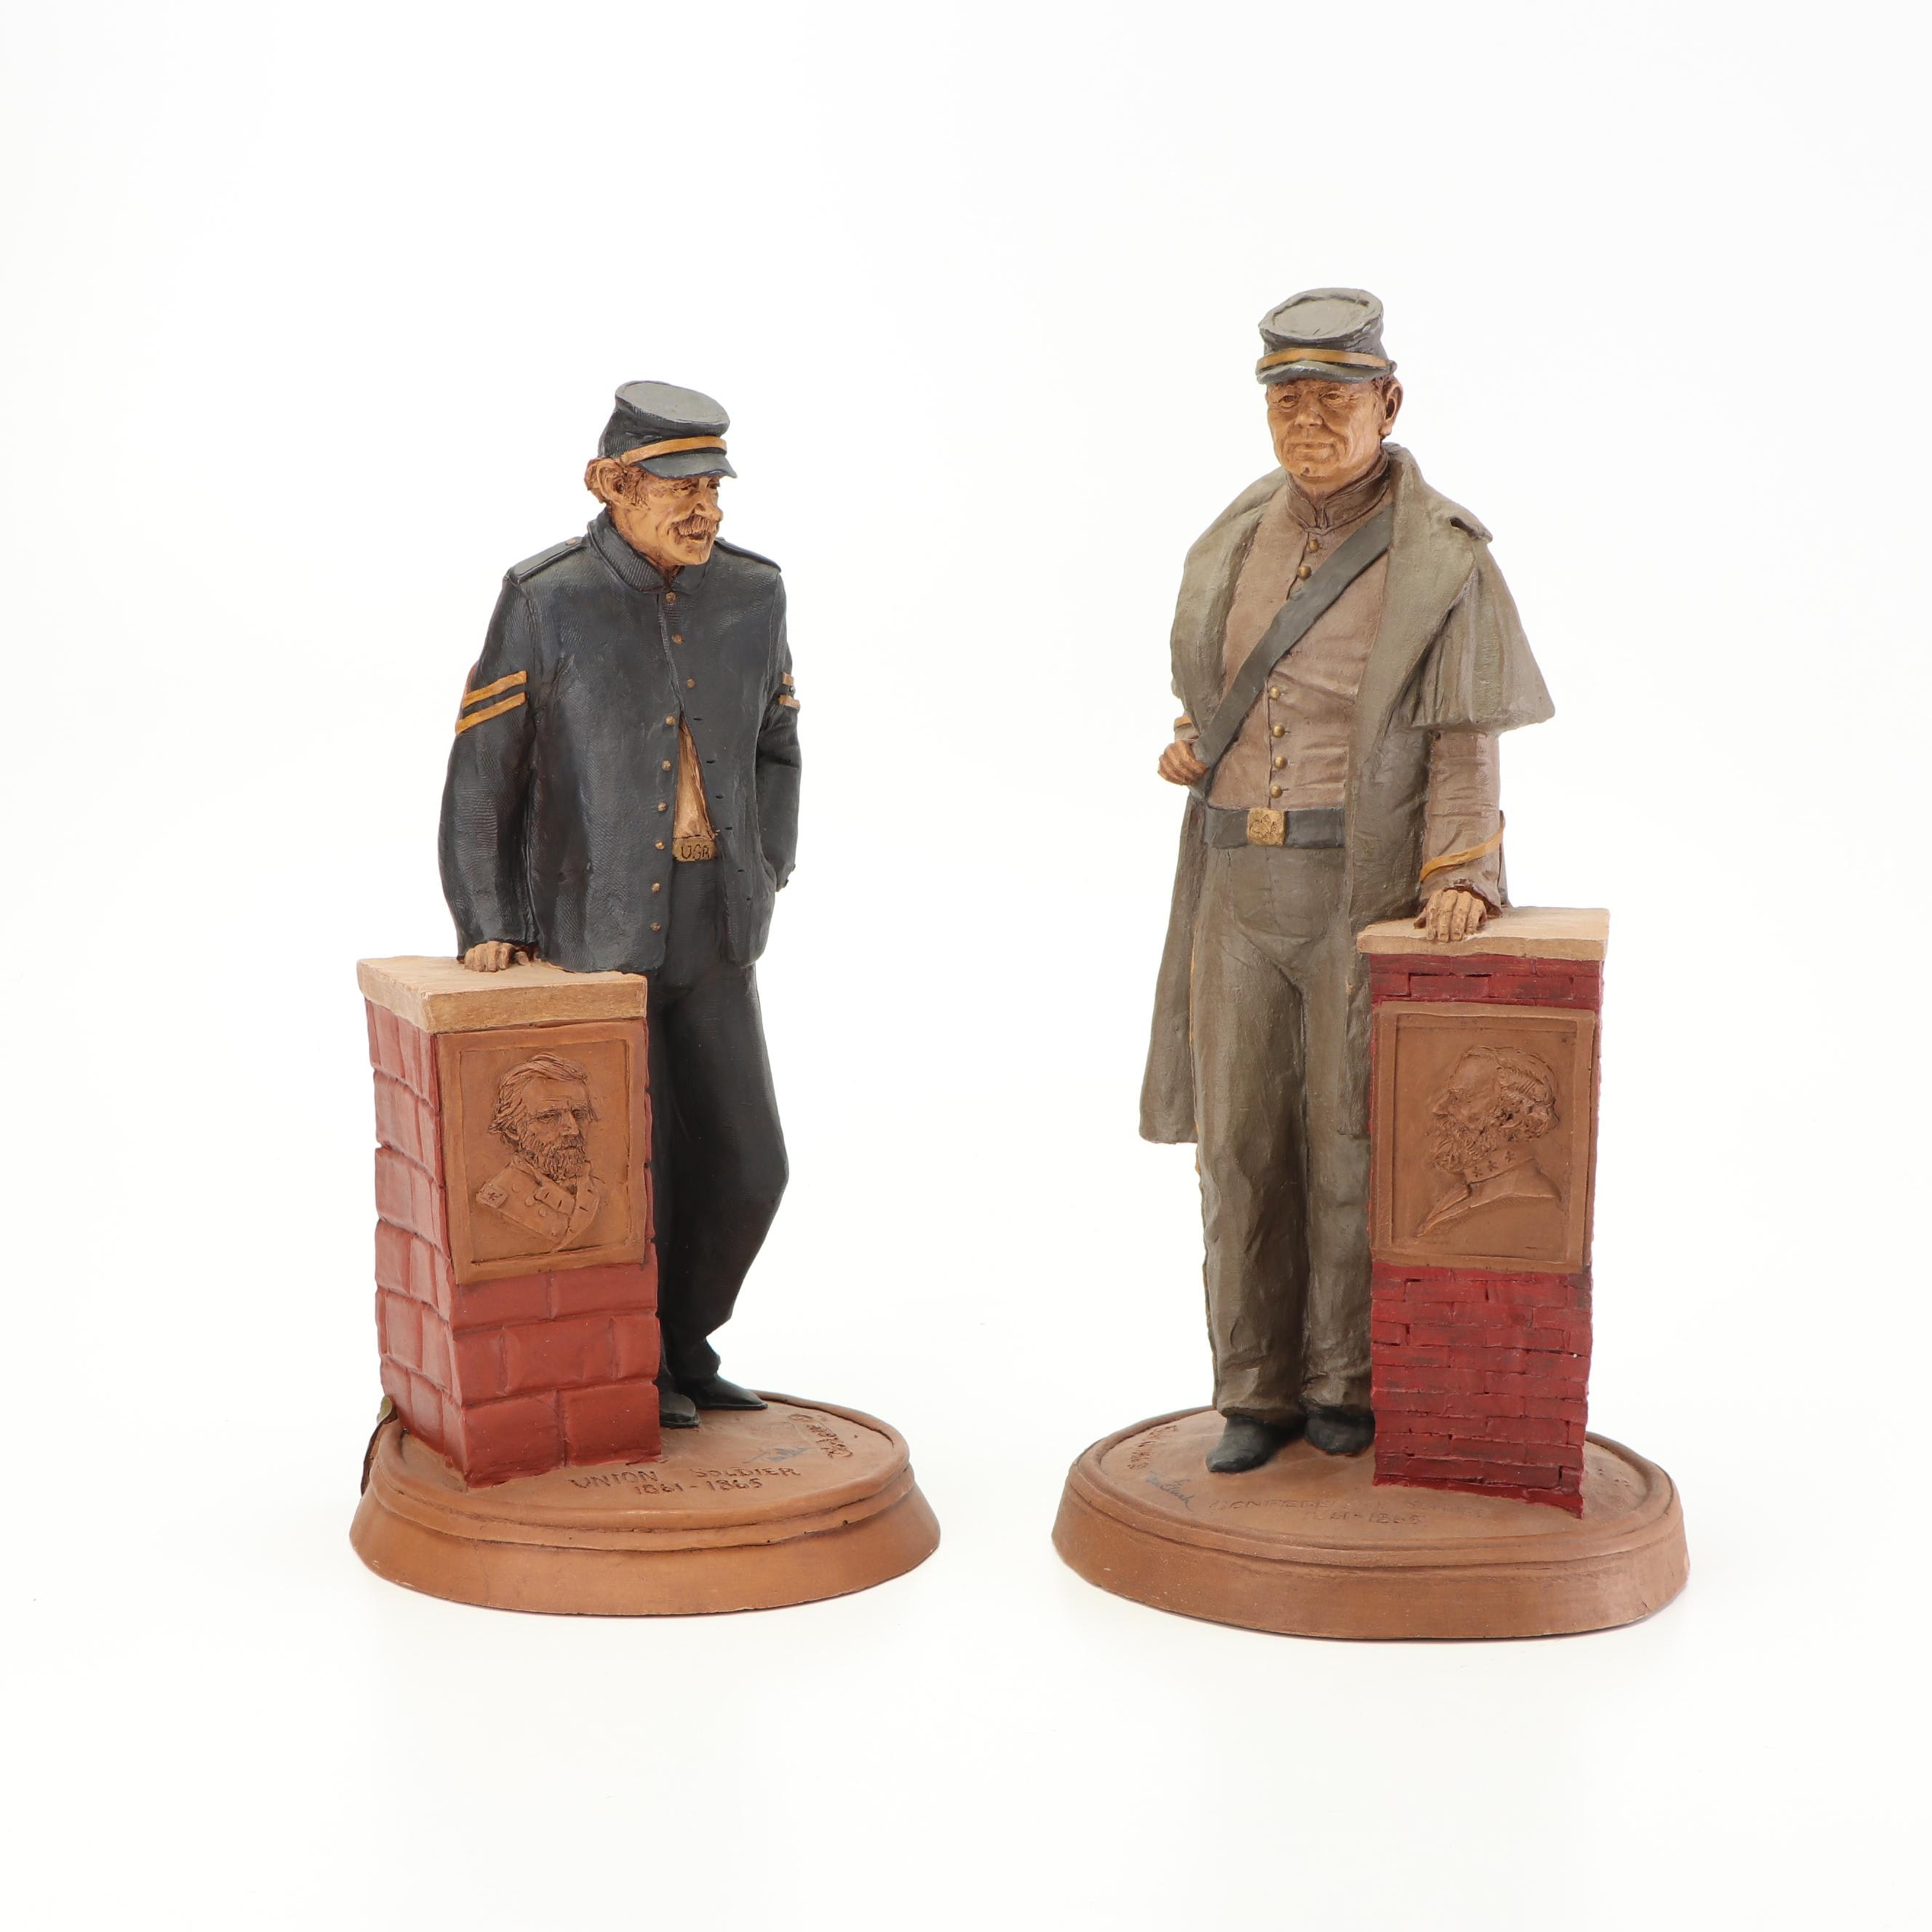 Tom Clark Union and Confederate Soldier Figurines